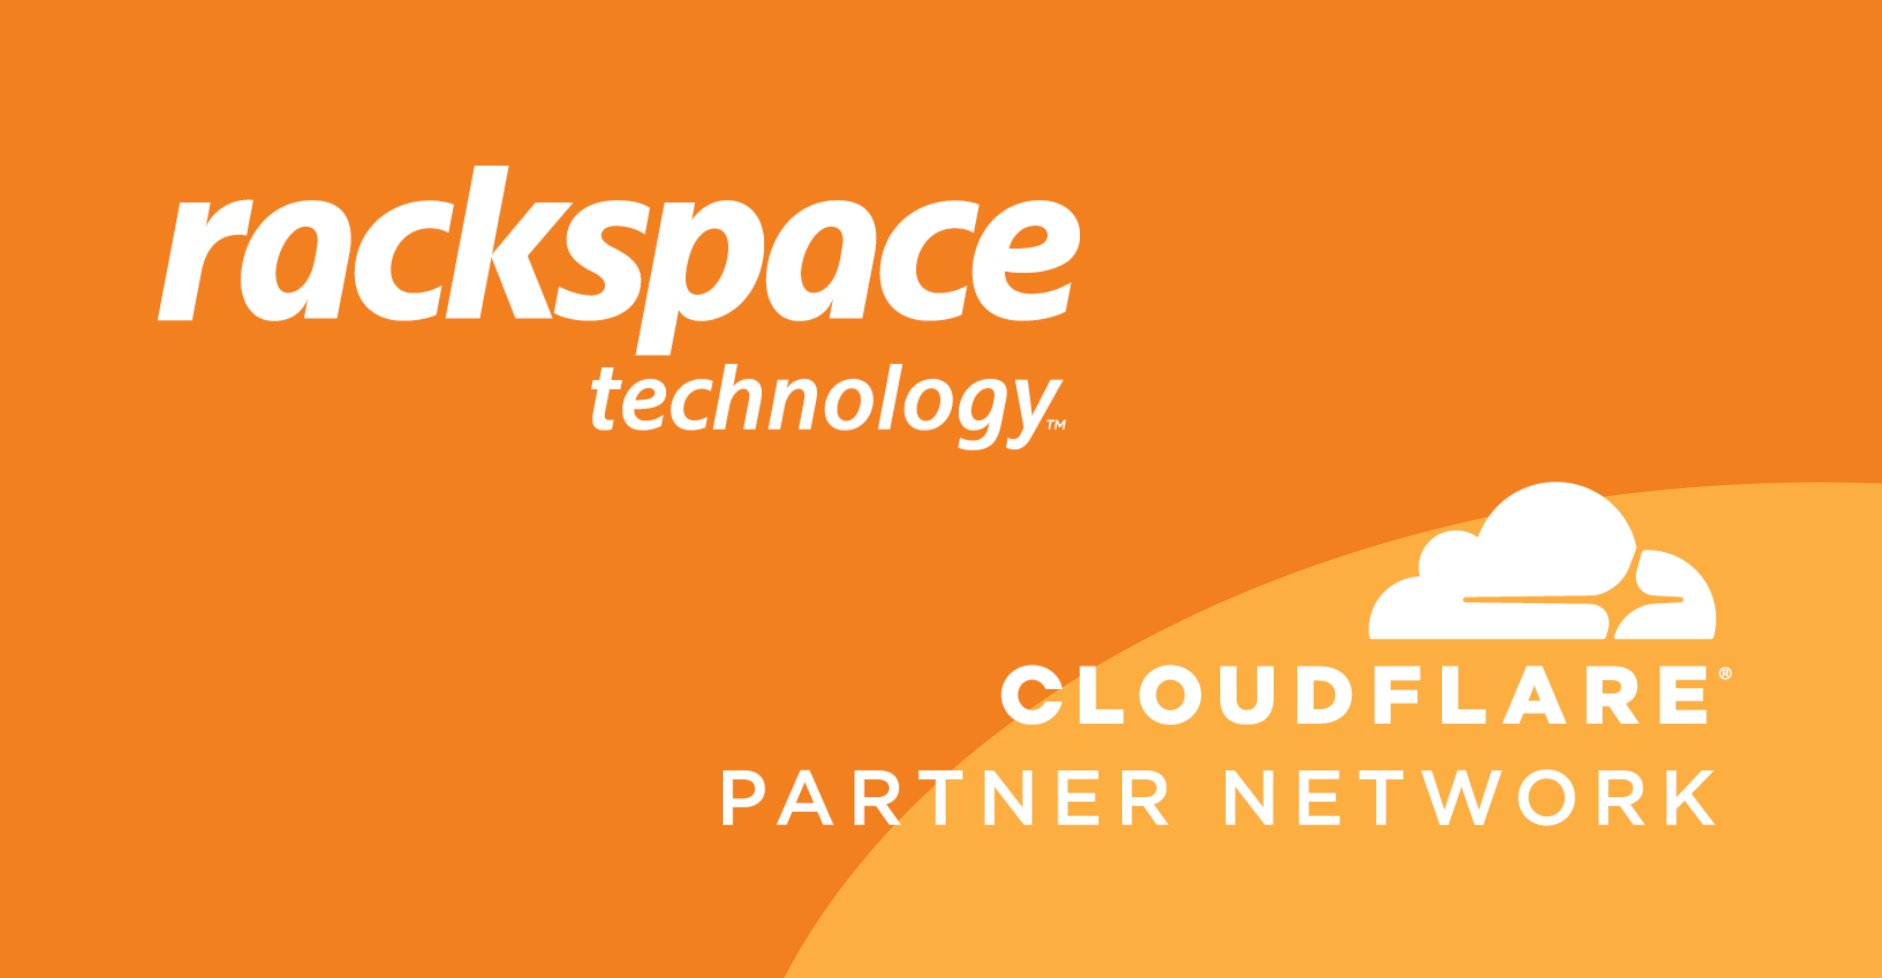 Cloudflare and Rackspace Technology Expand Partnership with Managed Services